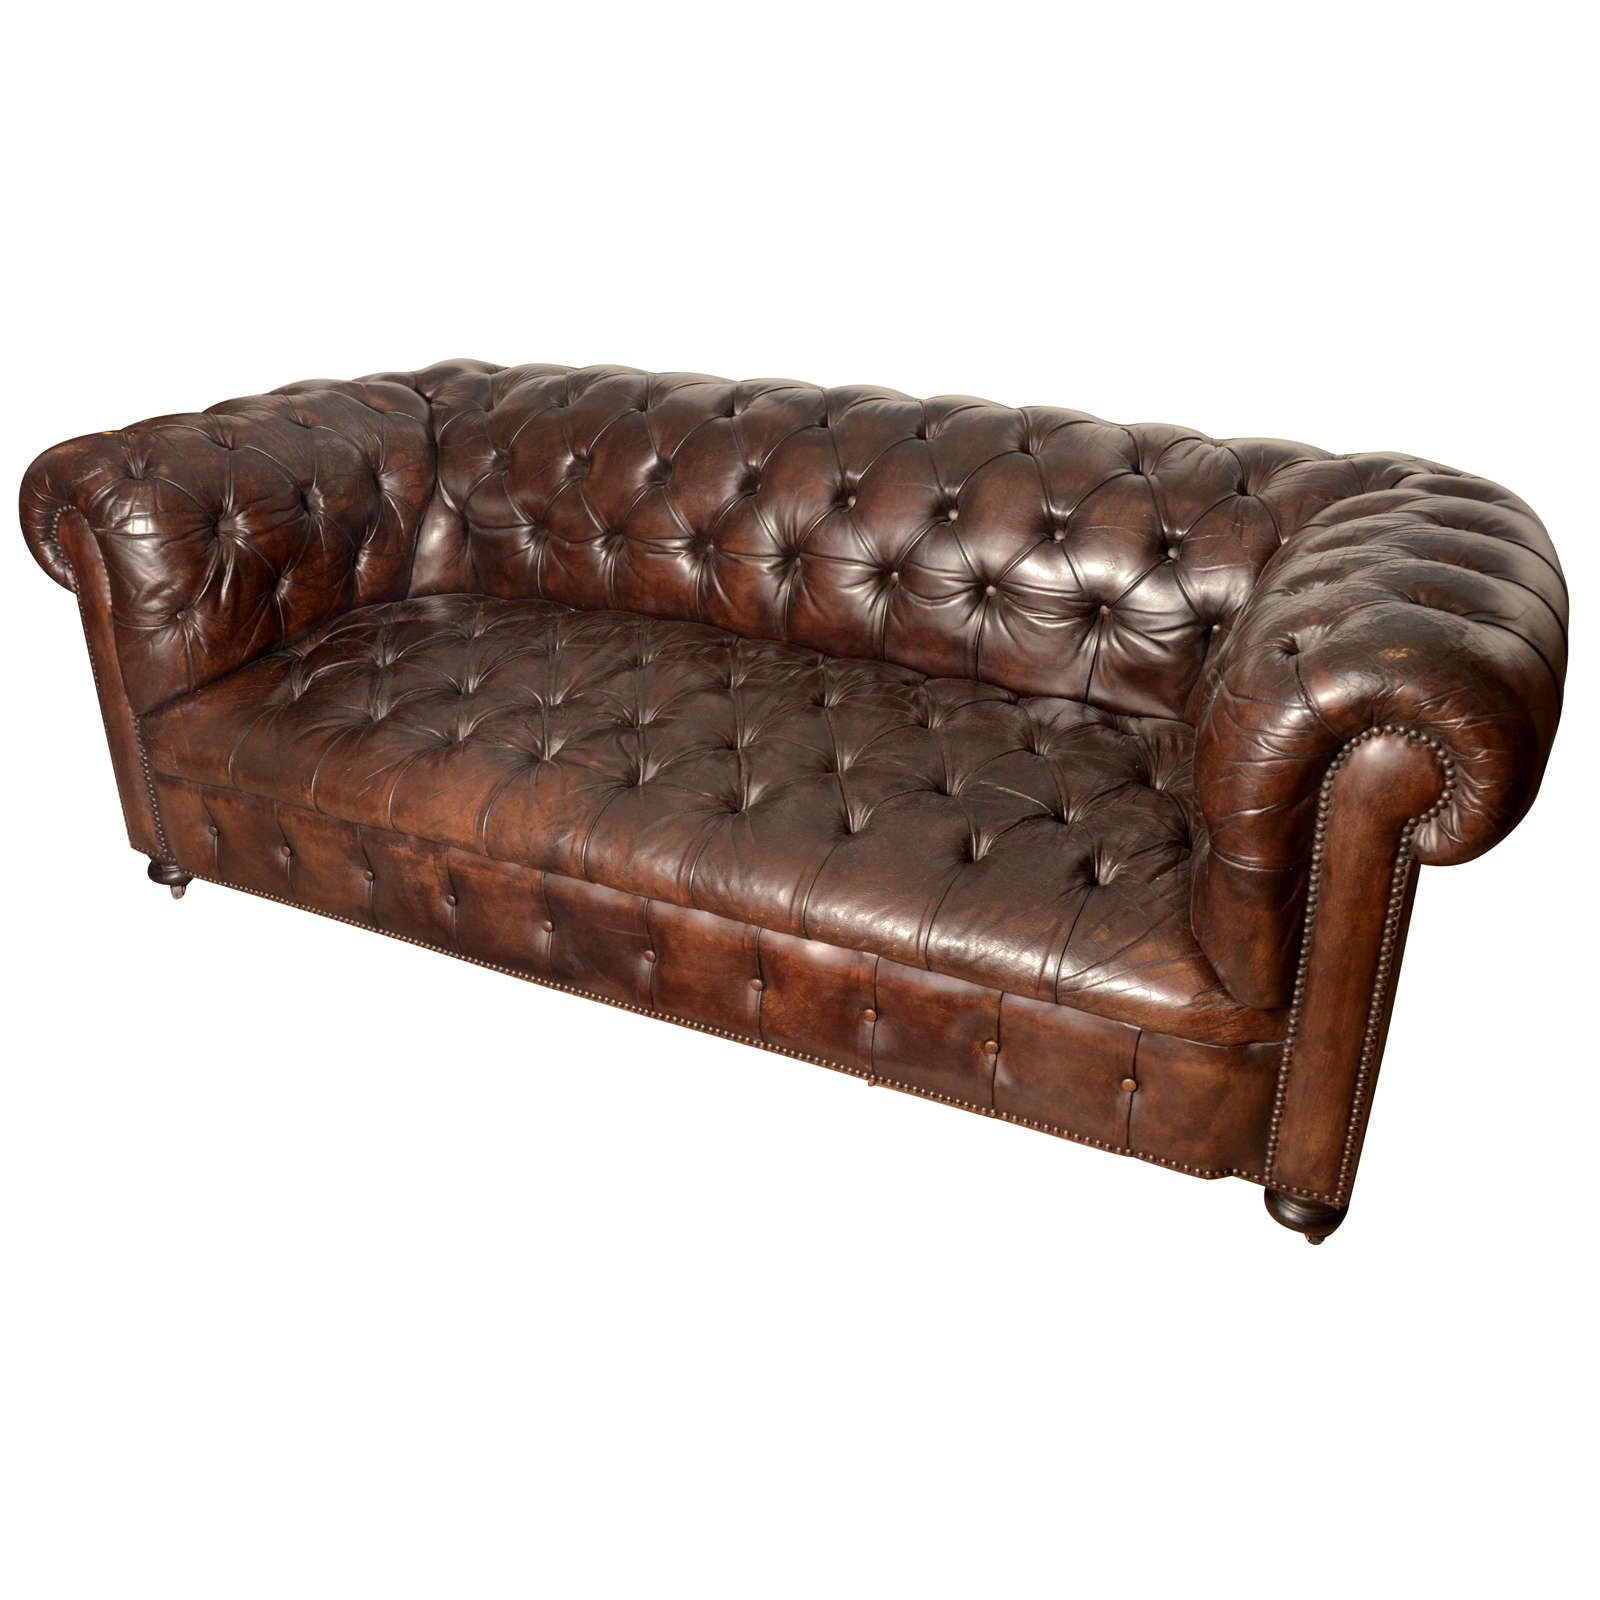 French Mid Century Chesterfield Sofa In Dark Brown For